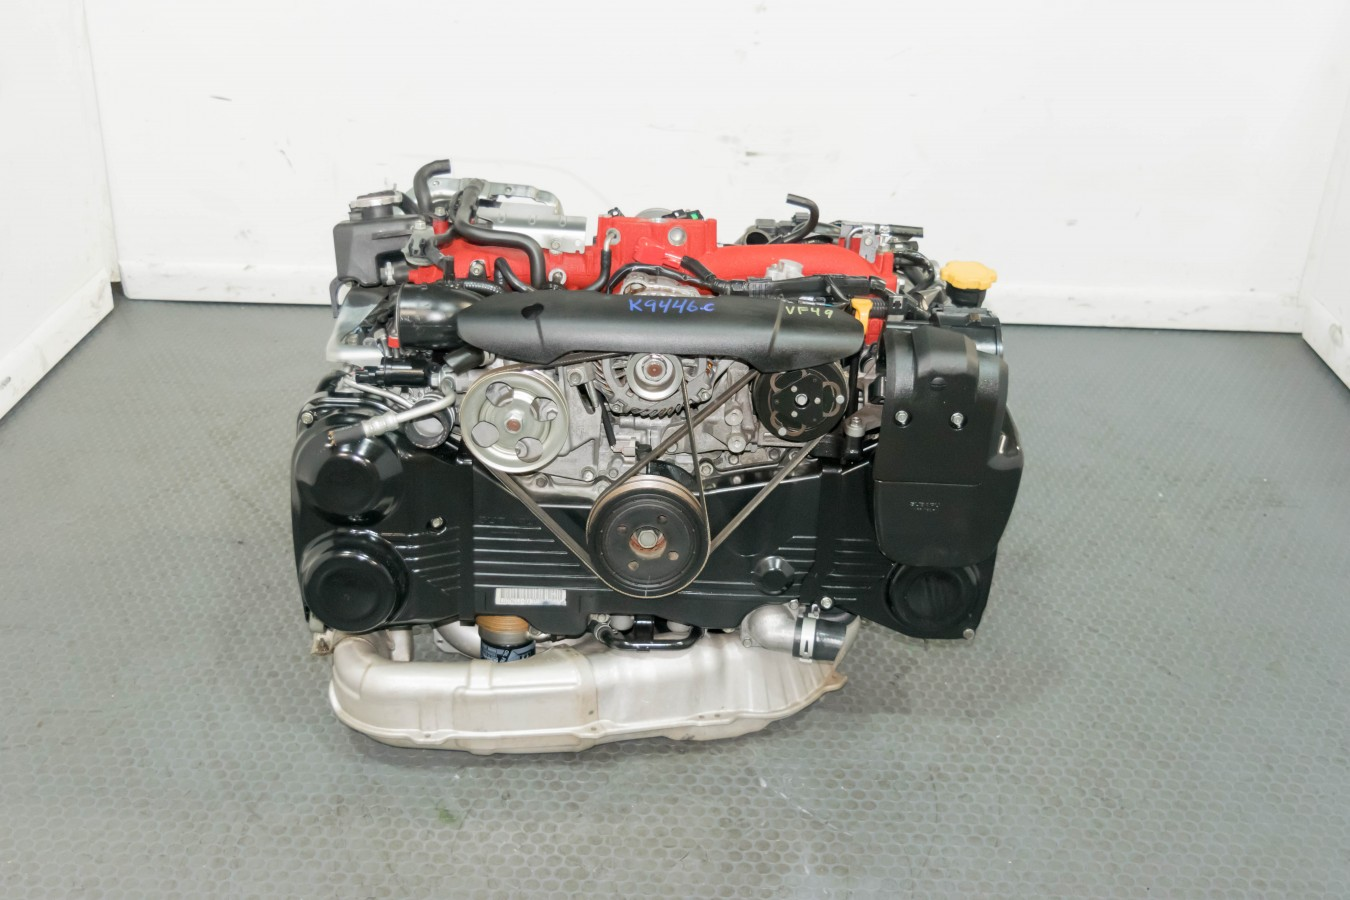 Jdm V10 Subaru Sti 2008 2014 Ej207 2 0l Engine Swap For Sale With Vf49 Twin Scroll Turbocharger